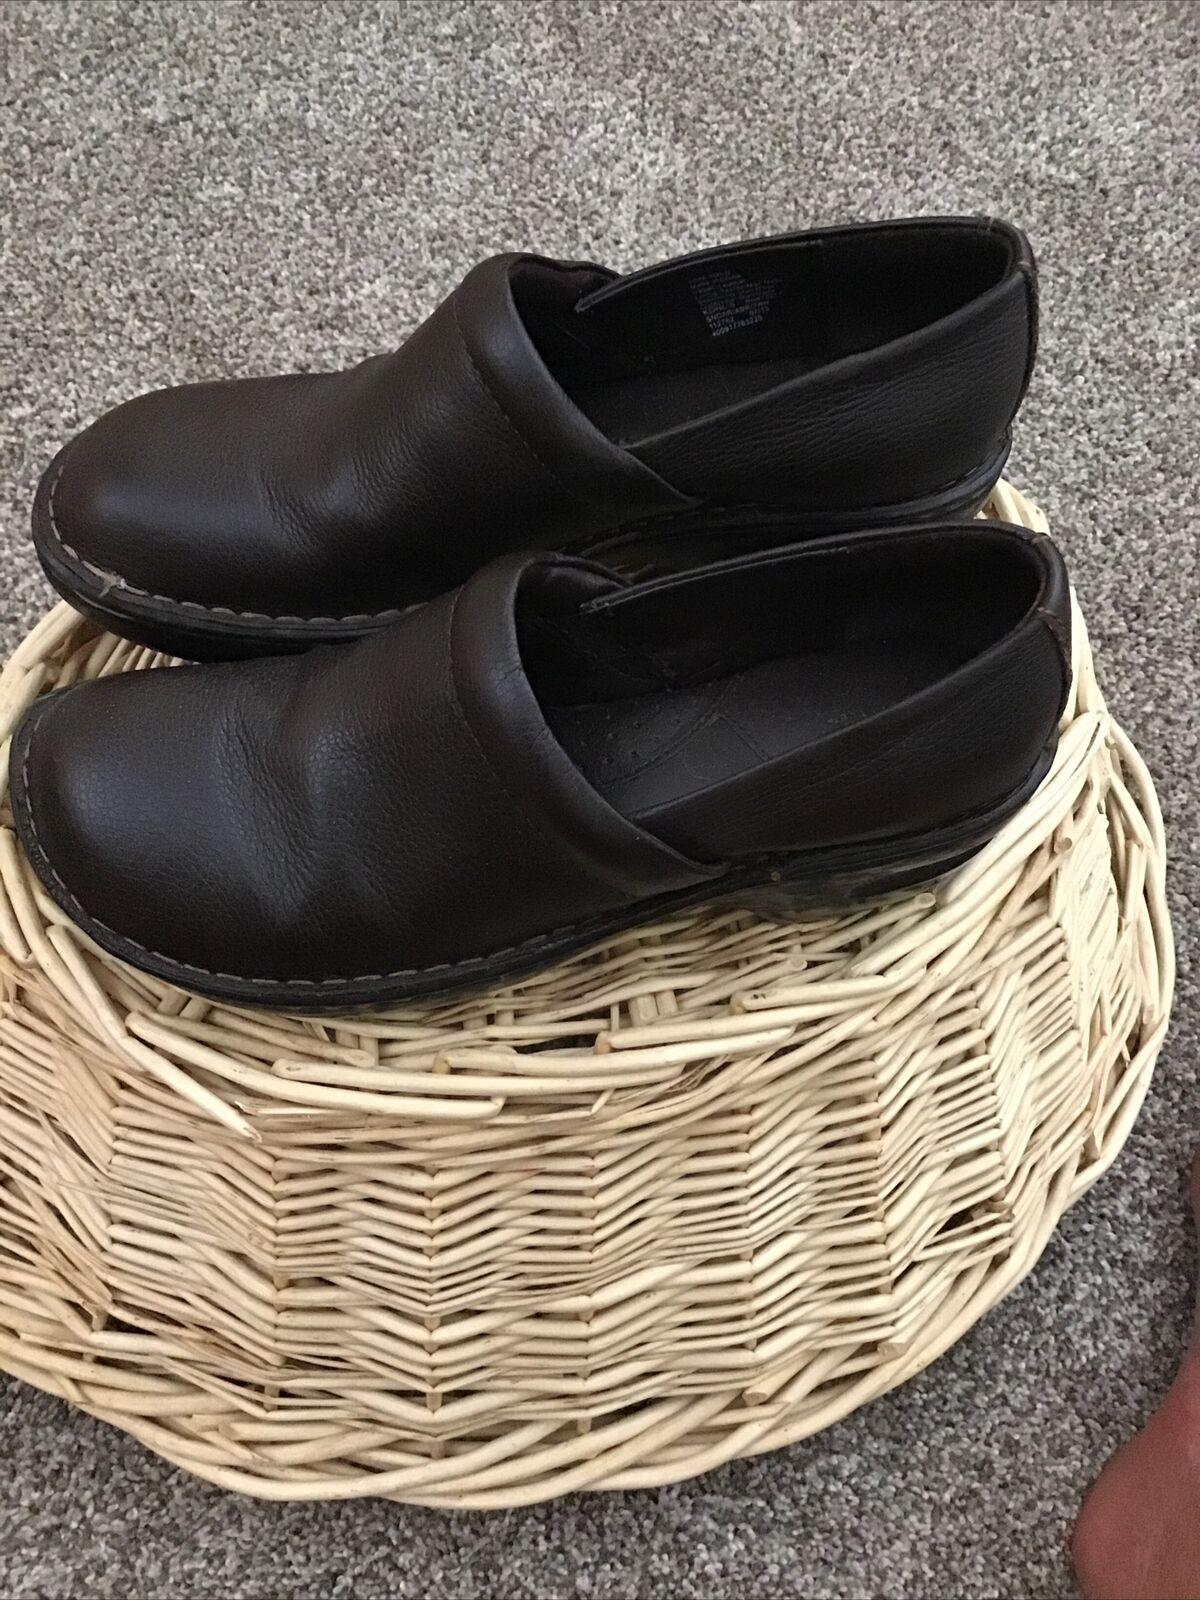 Sonoma Brown Leather Uppers Clogs Slip On Work Shoes Women Size 9 EUC